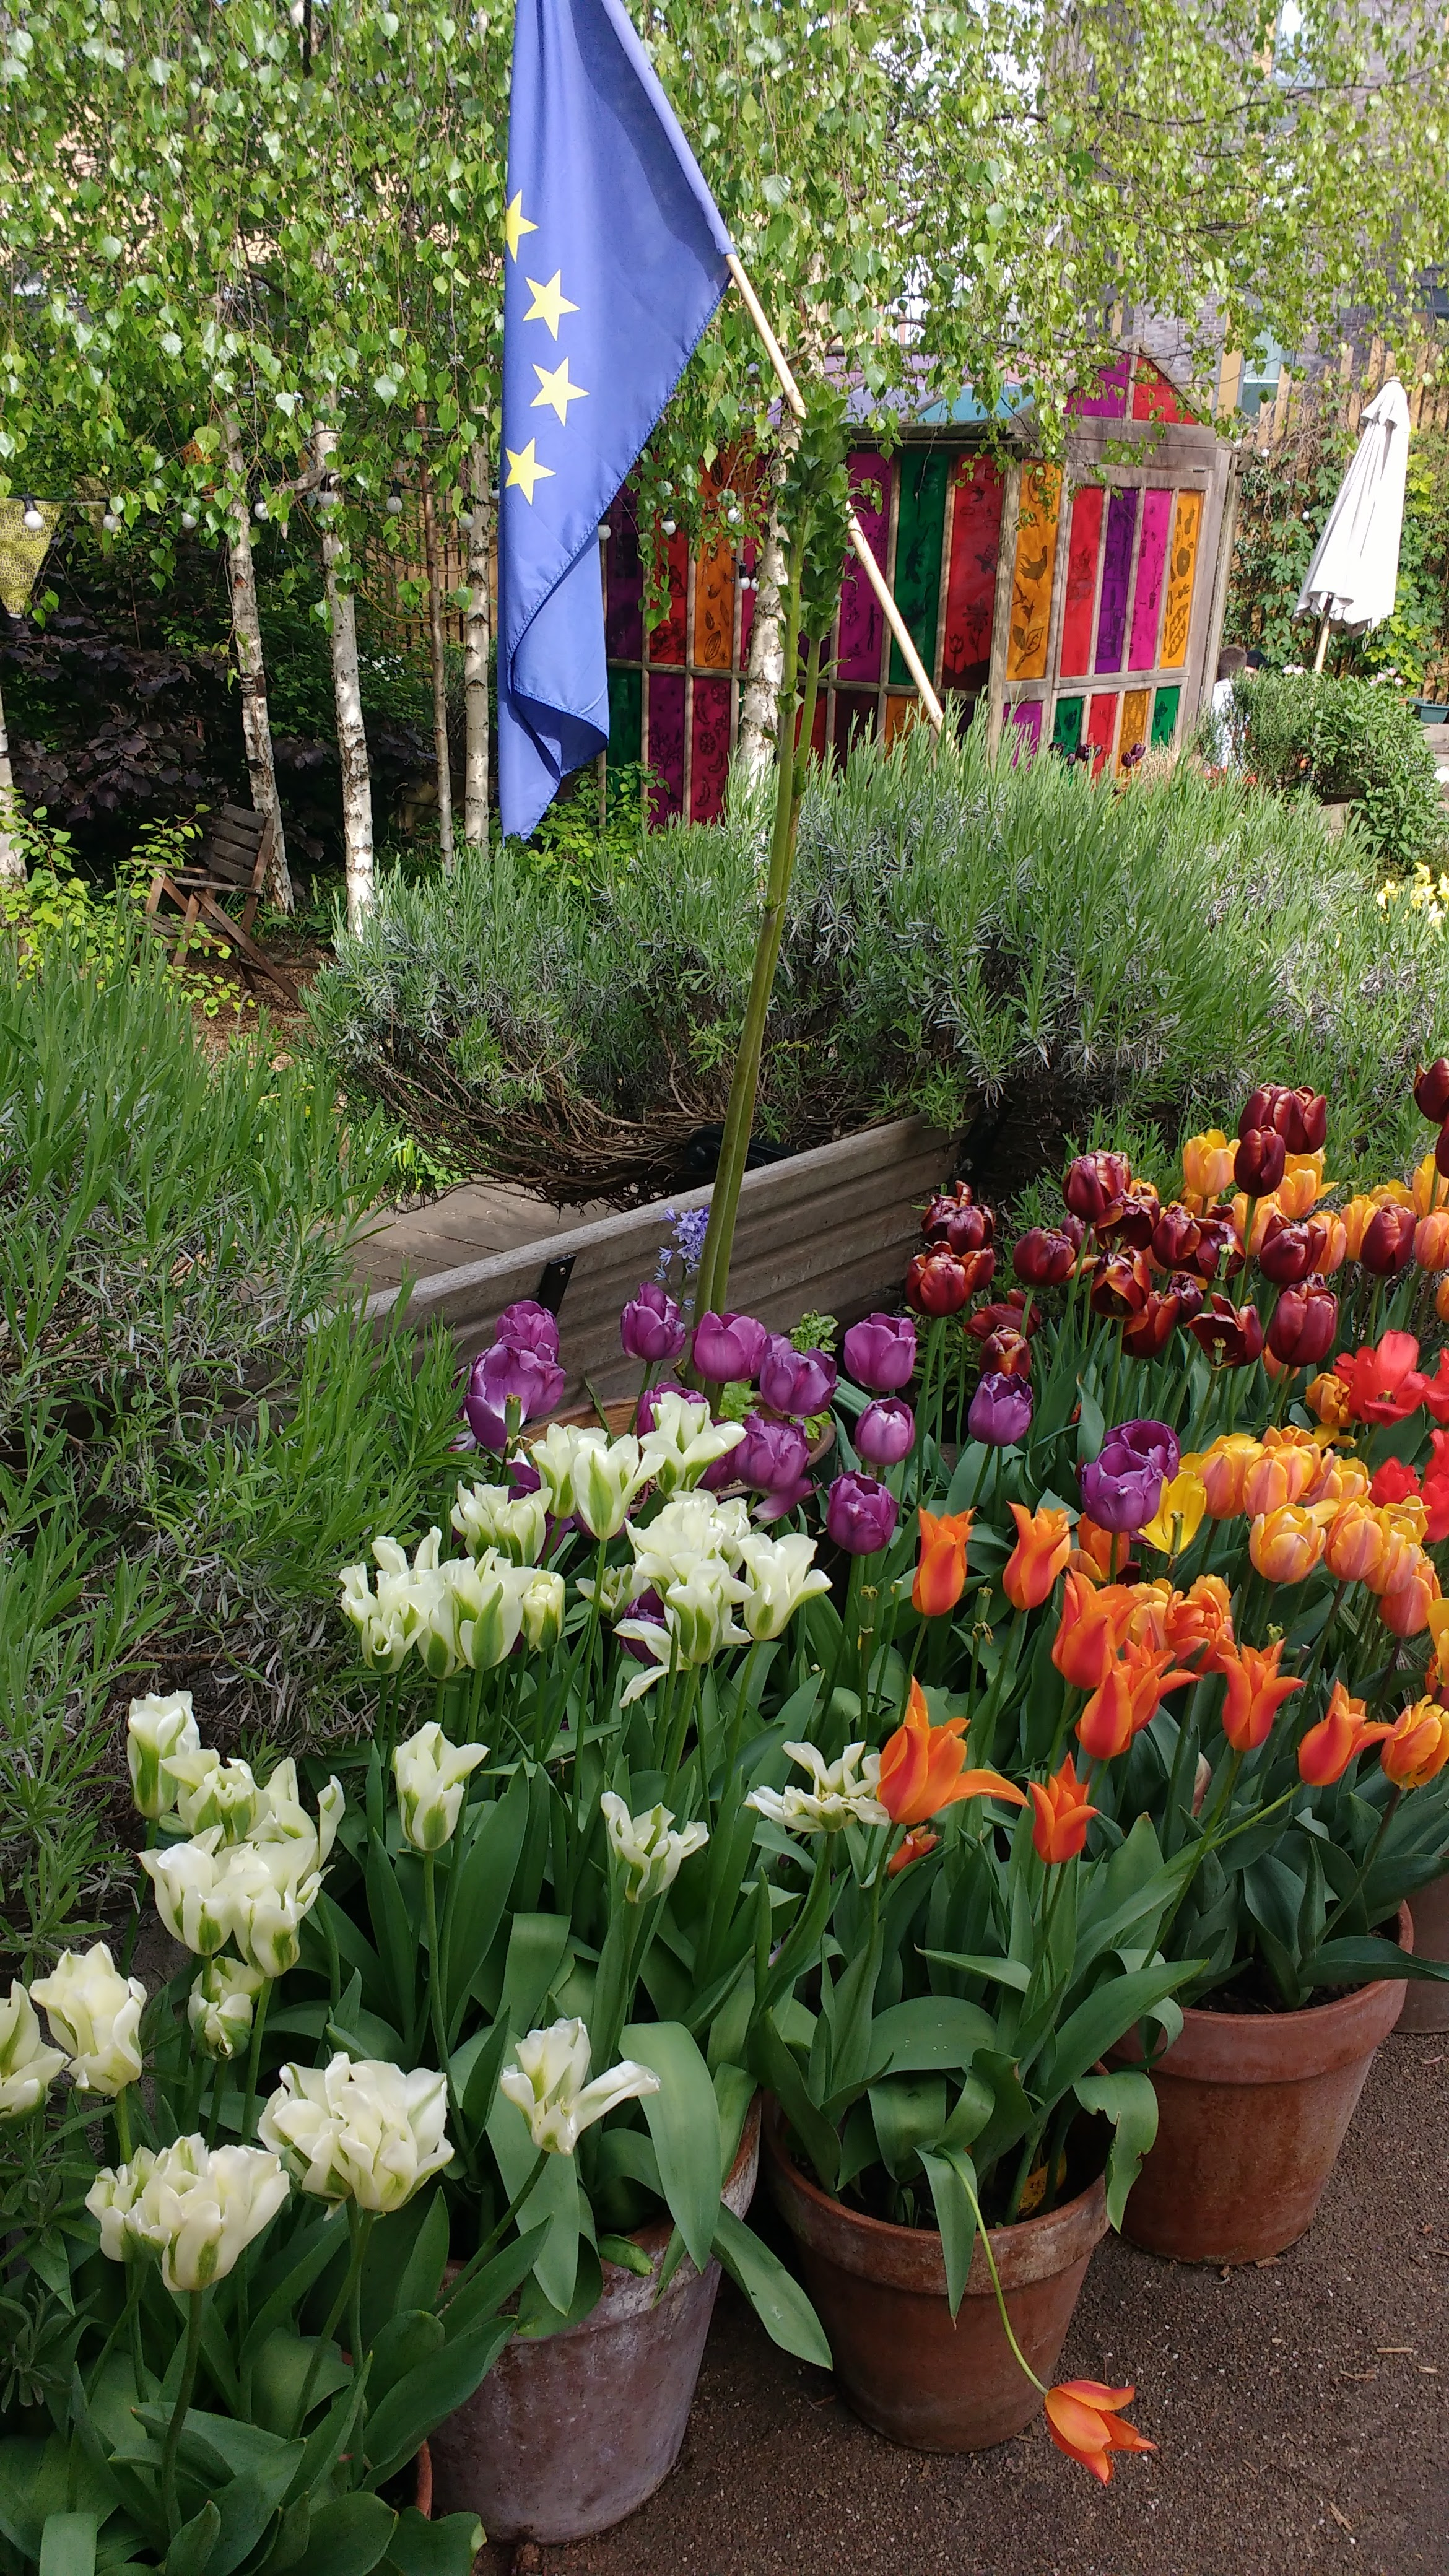 A happy european union: tulips, lavender, birch trees and stars